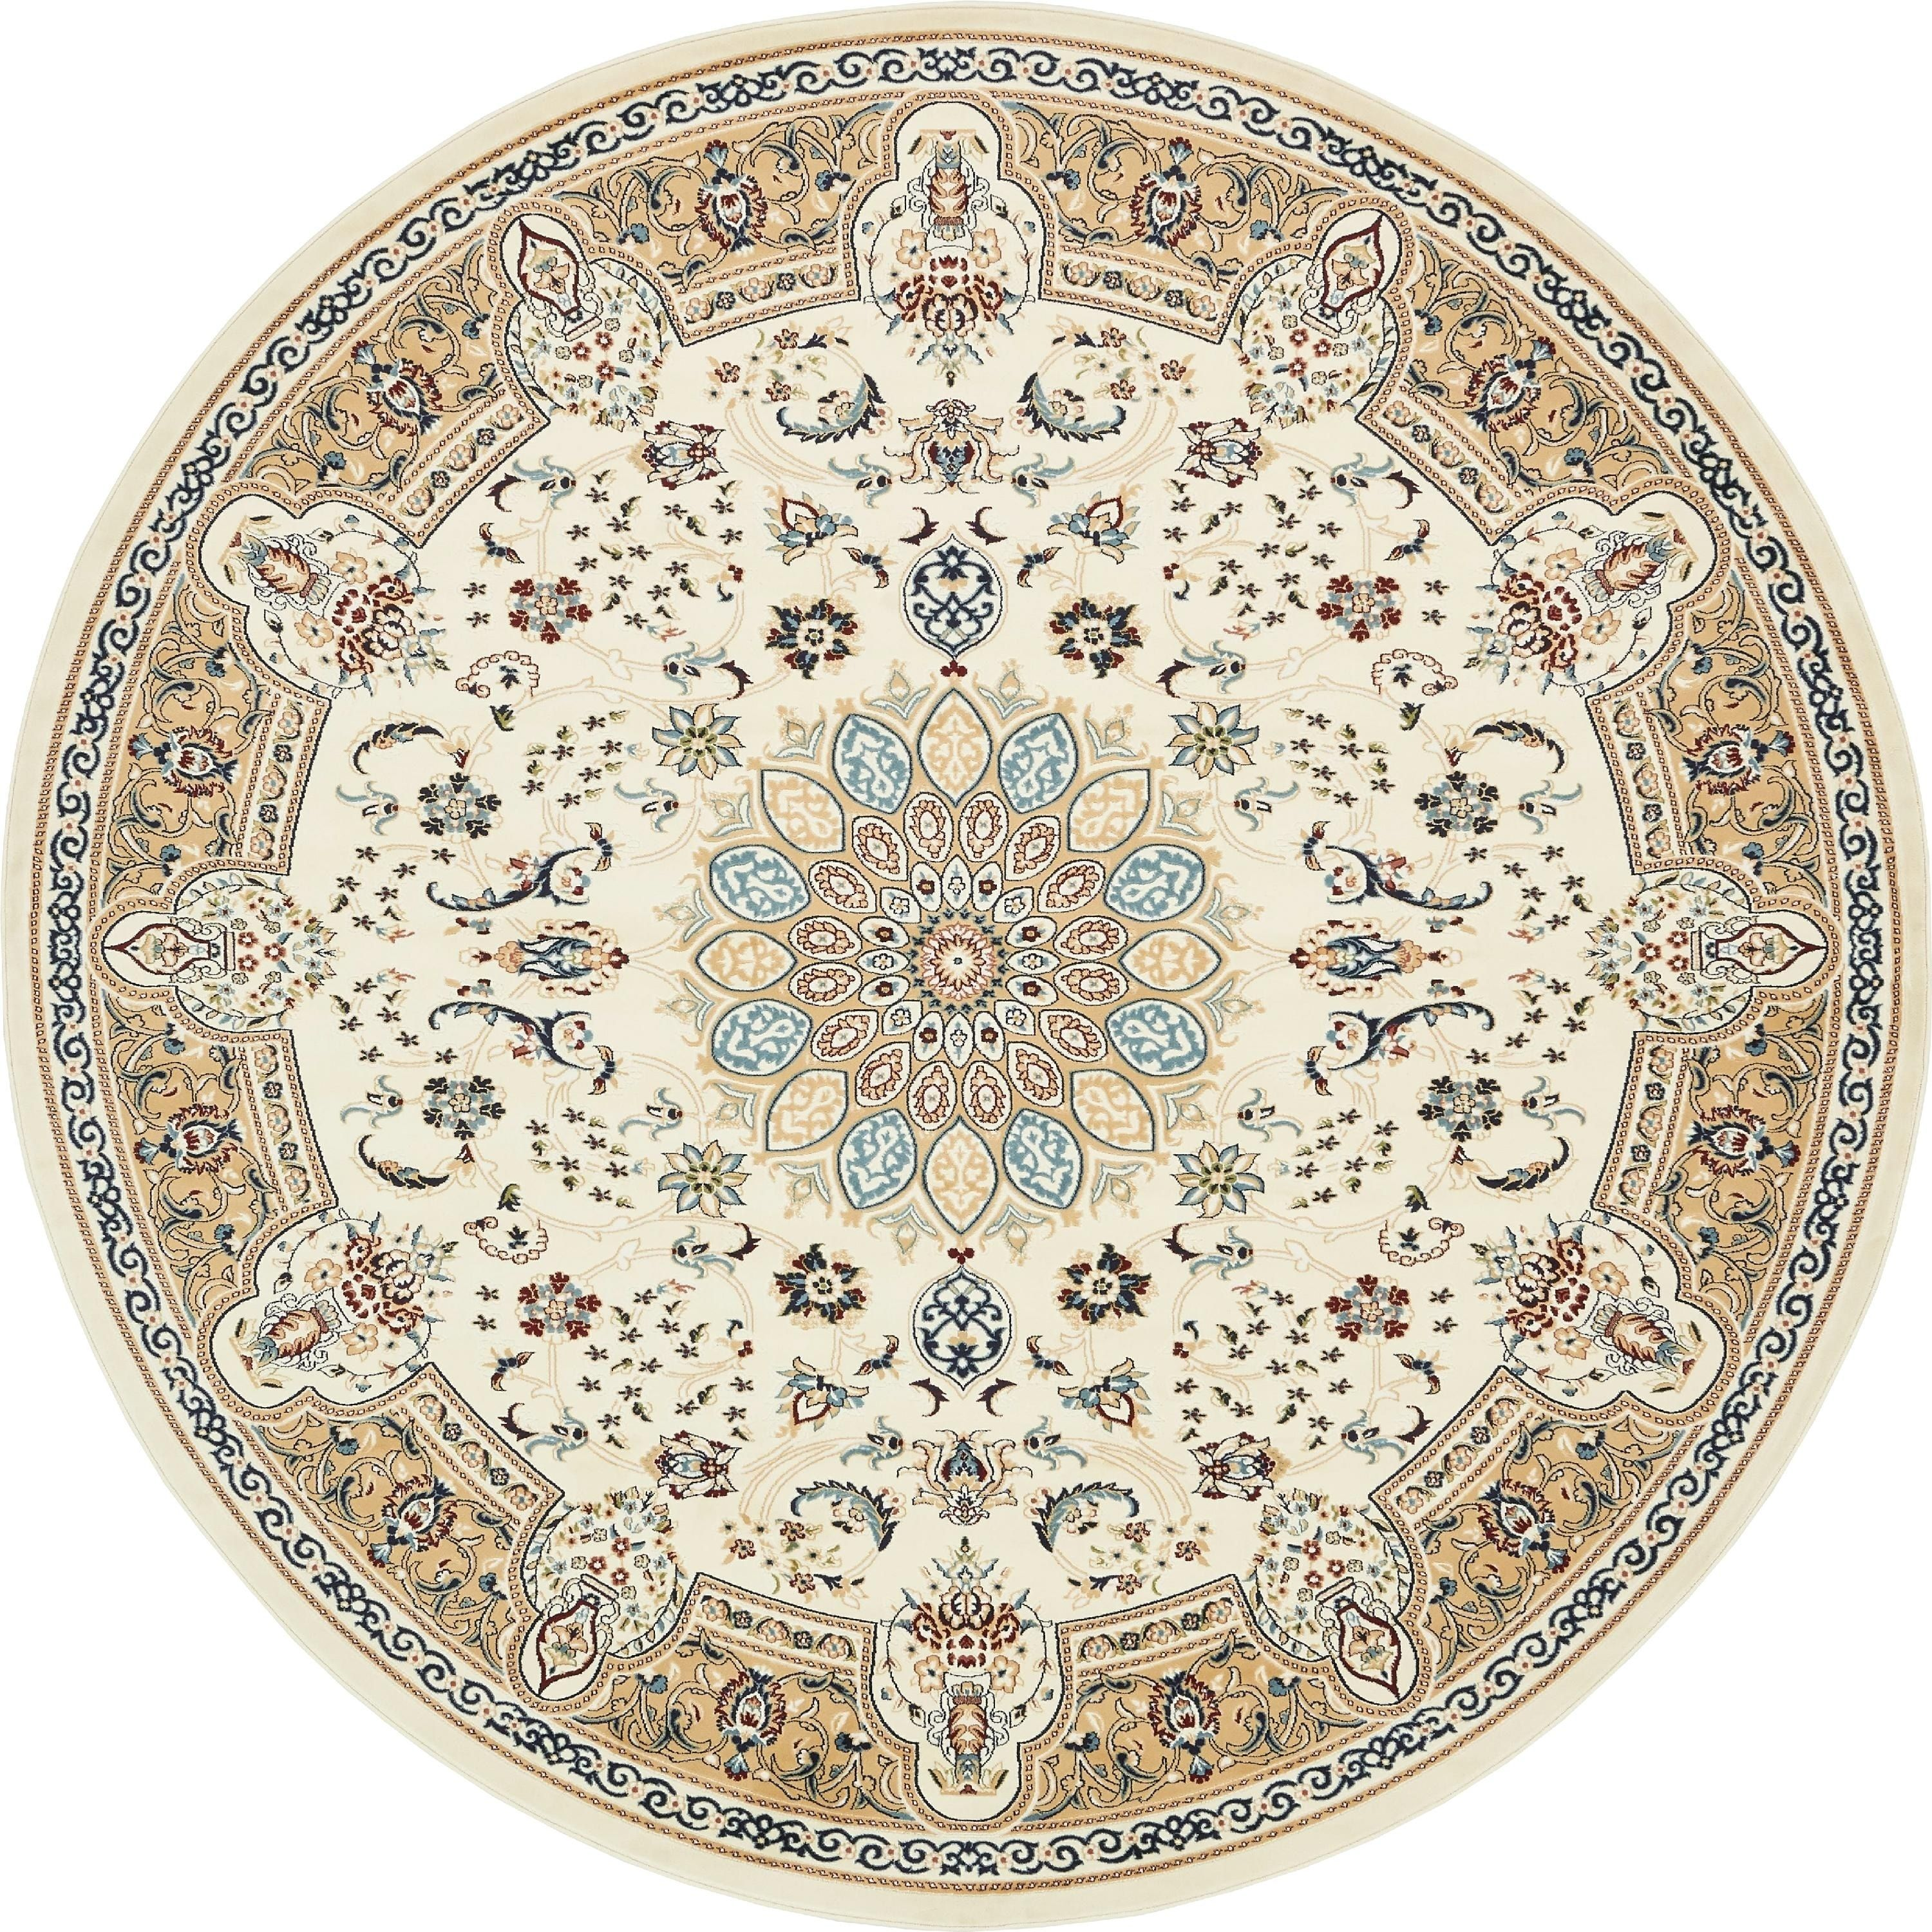 Unique Loom Nain Design Traditional Fl Burgundy Cream Fabric Blend Cotton Indoor Outdoor Round Rug 10 X Navy Blue Size